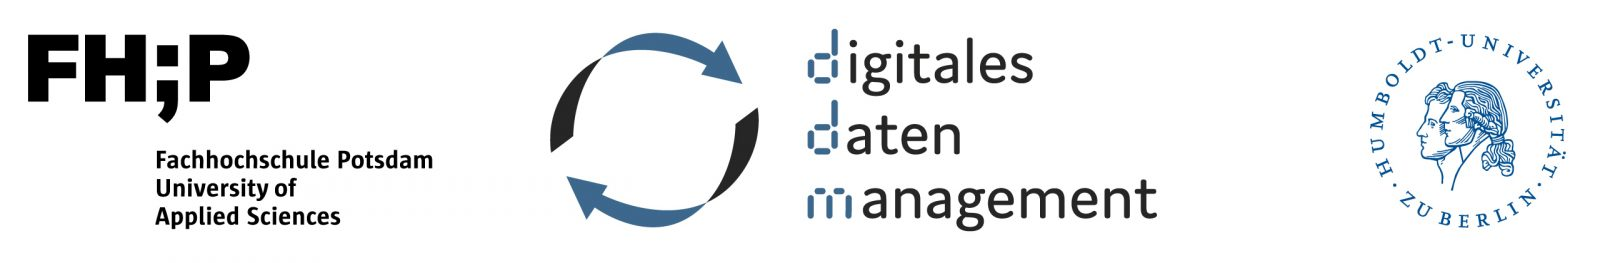 Digitales Datenmanagement (DDM)